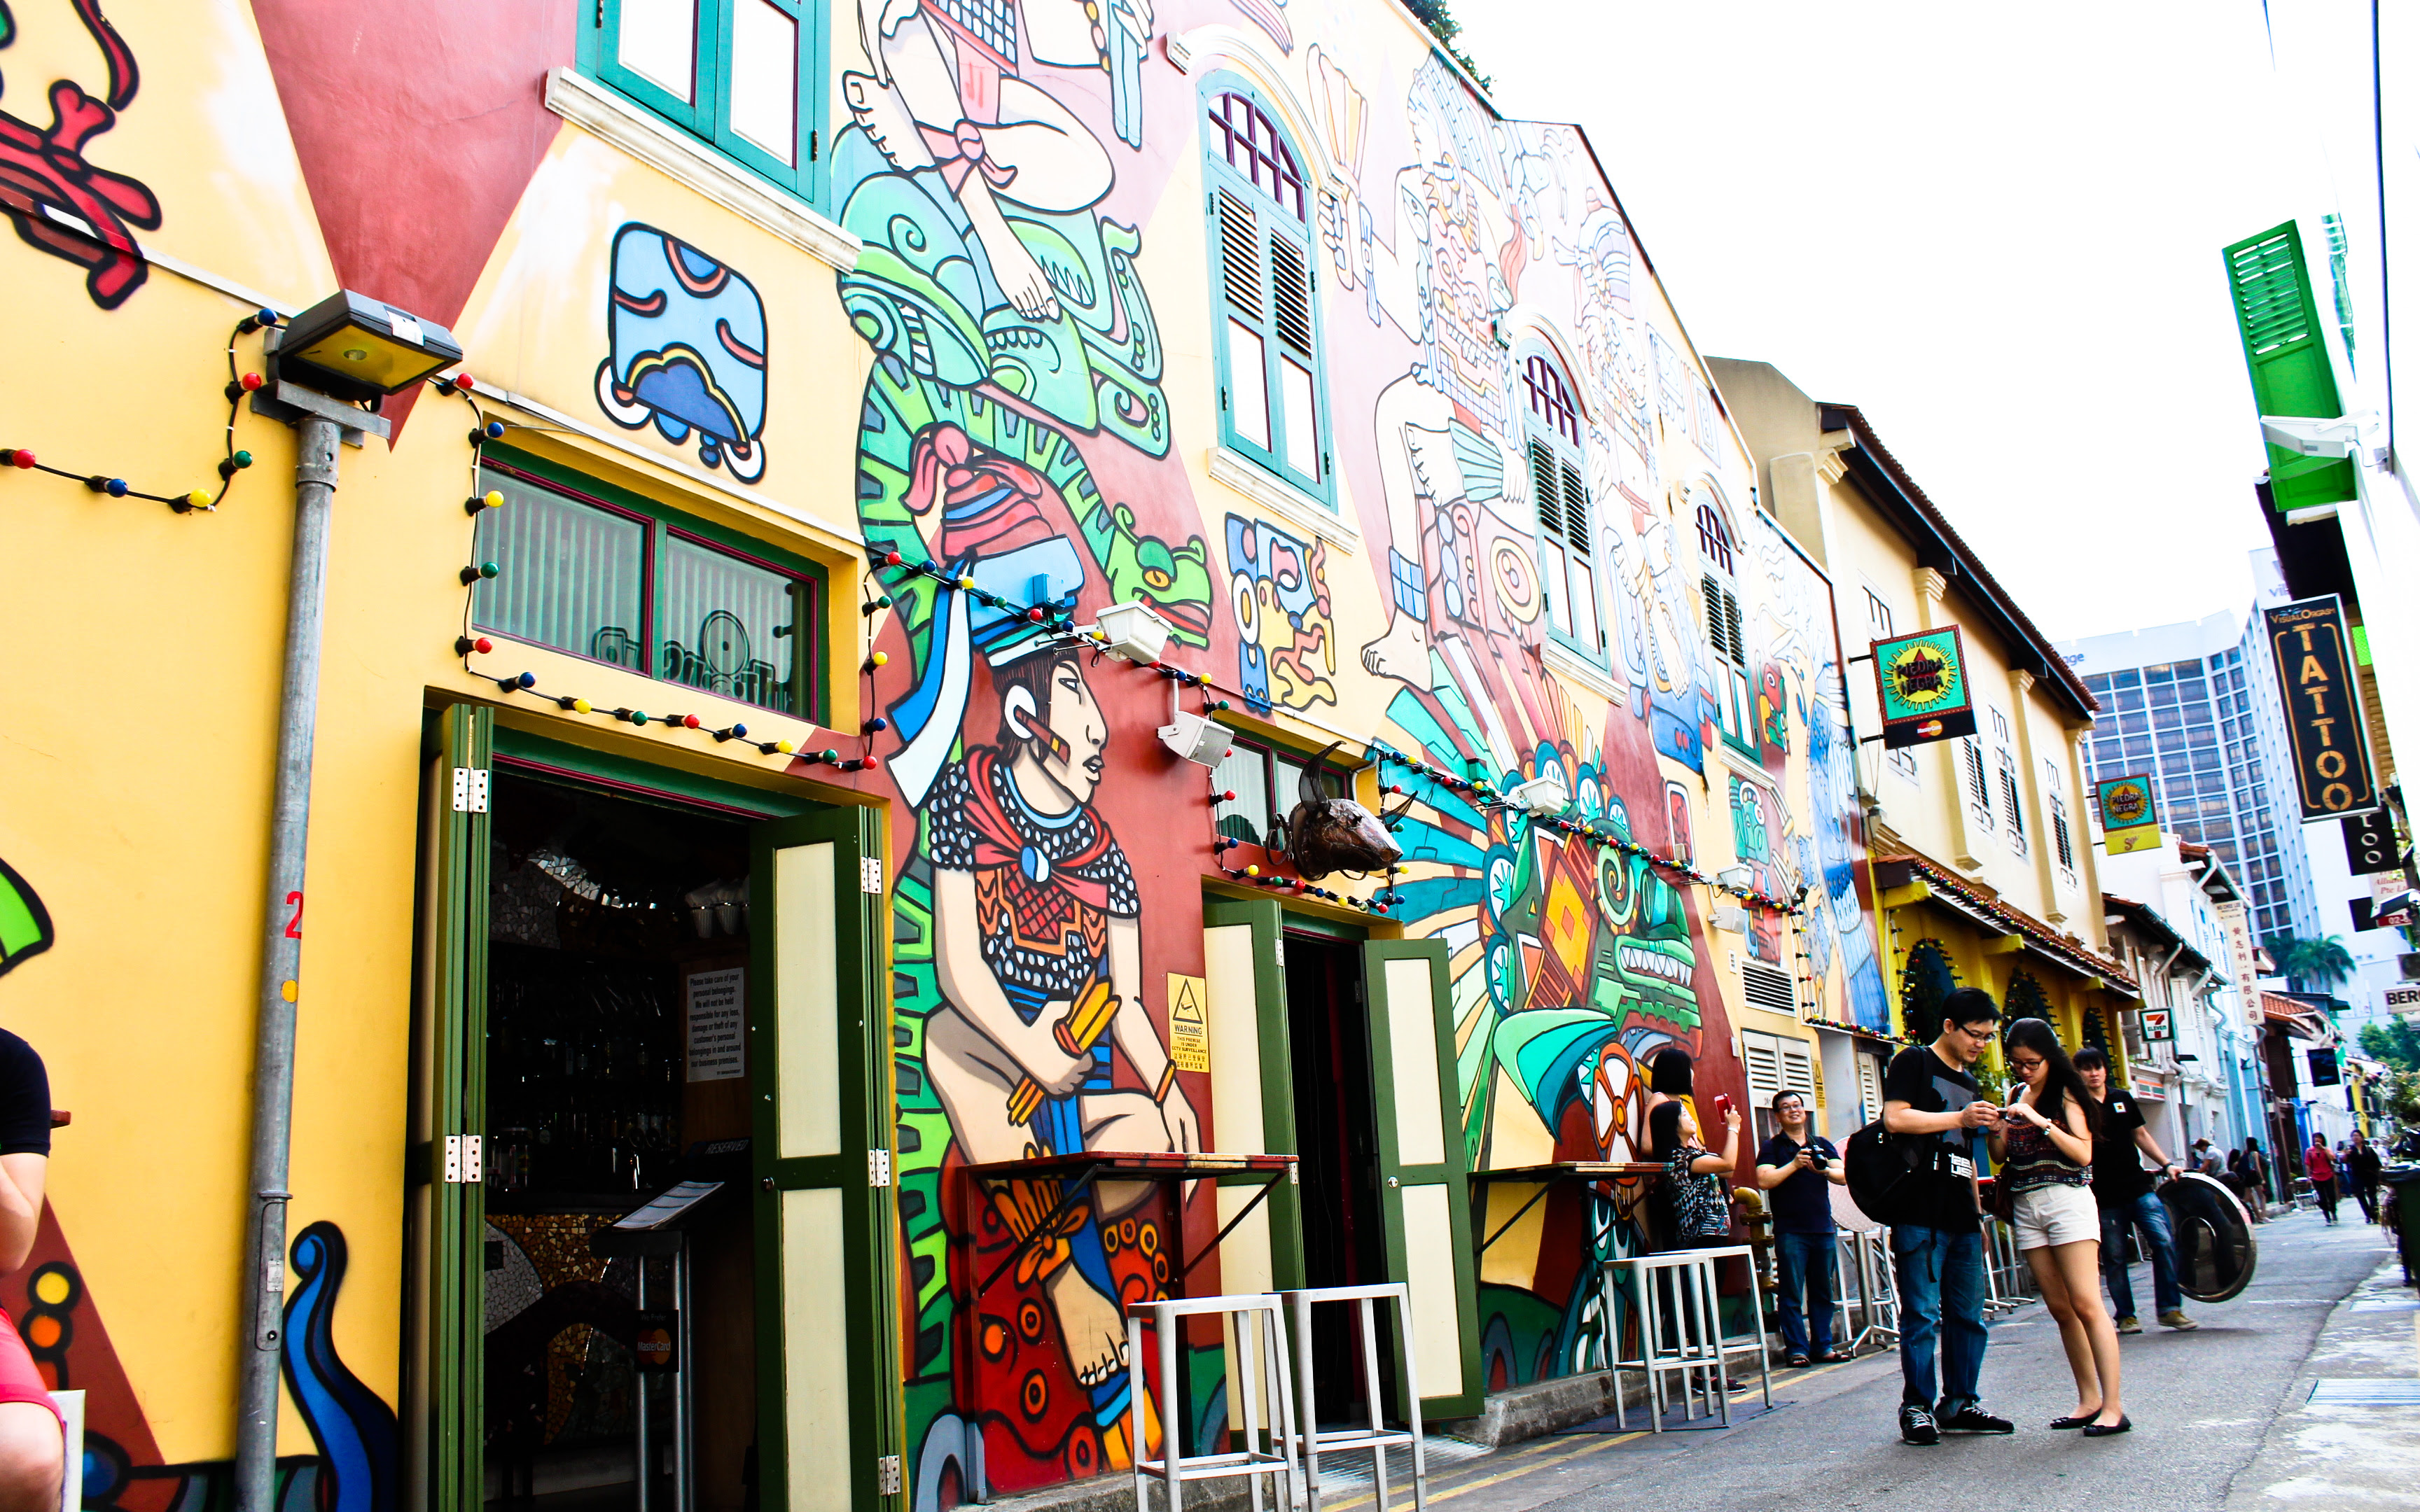 Haji Lane Singapore Location Attractions Map,Location Attractions Map of Haji Lane Singapore,Haji Lane Singapore accommodation destinations hotels map reviews photos pictures